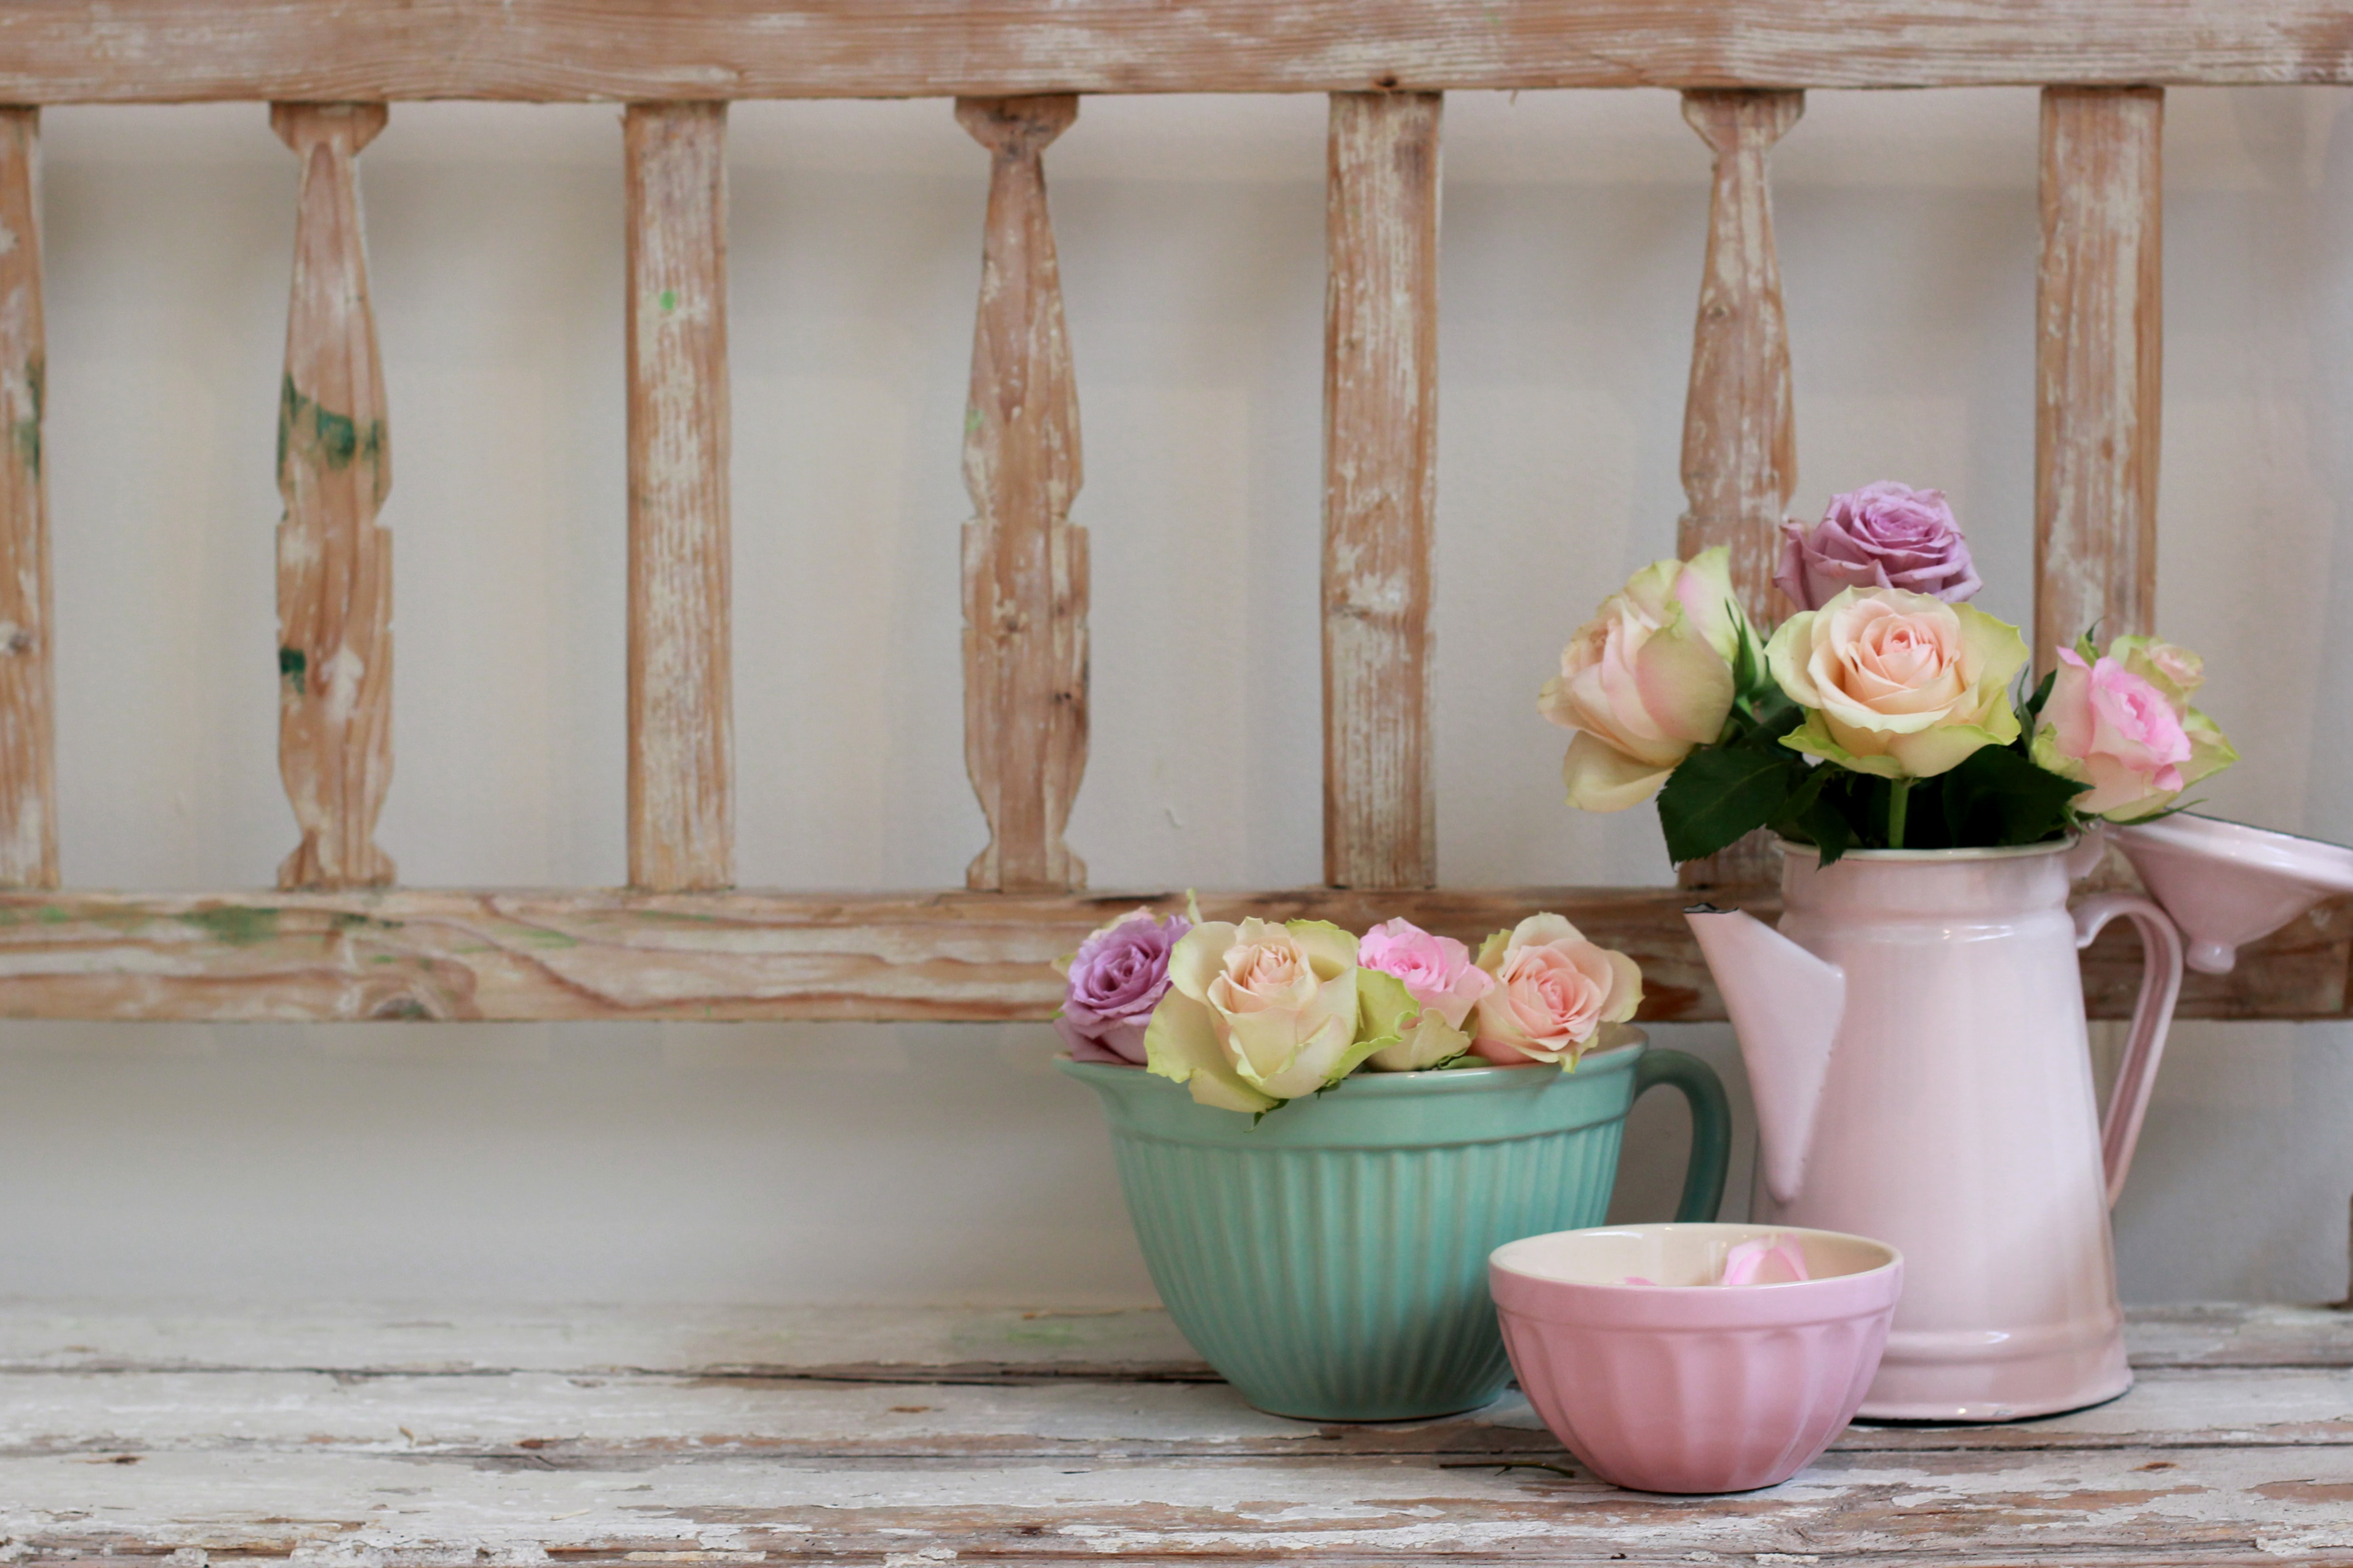 photo of petaled flowers with vase and watering can